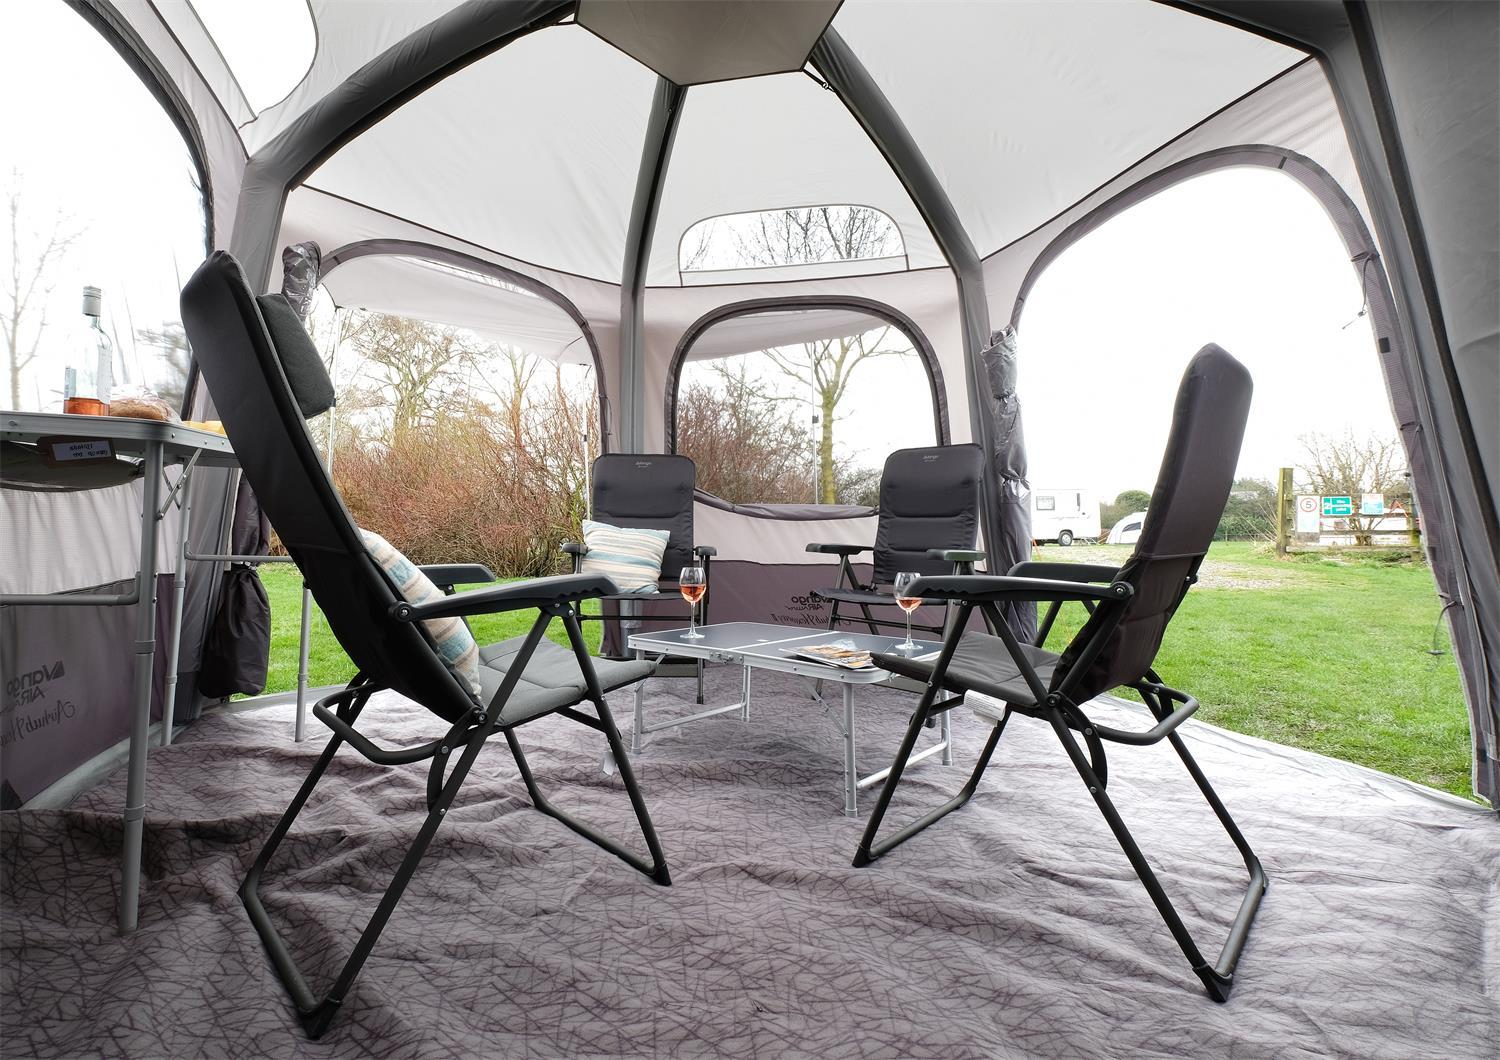 The Vango Airhub Hexaway awning has a unique shape.